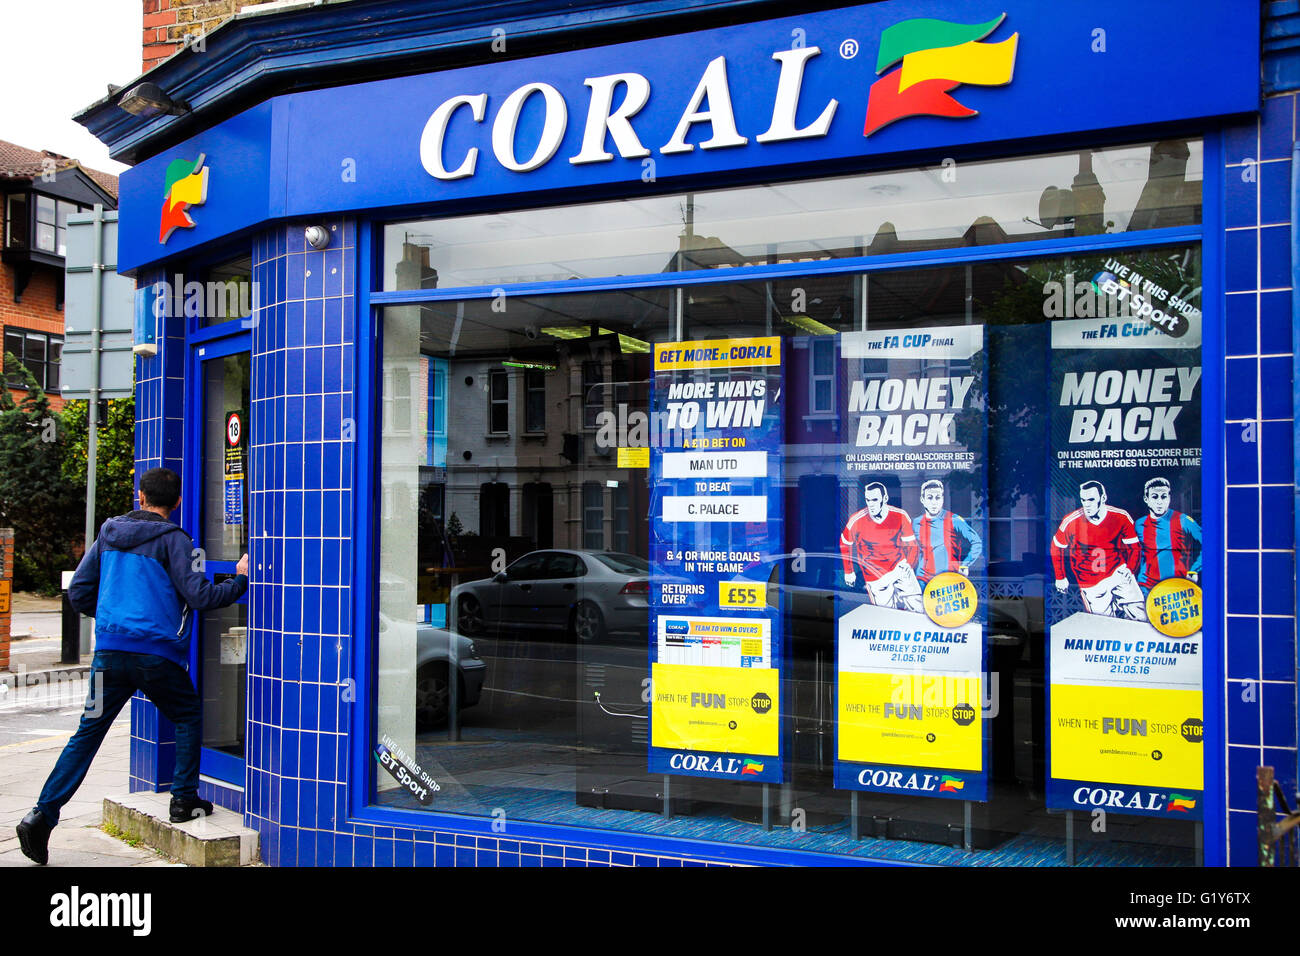 Coral Betting Shops